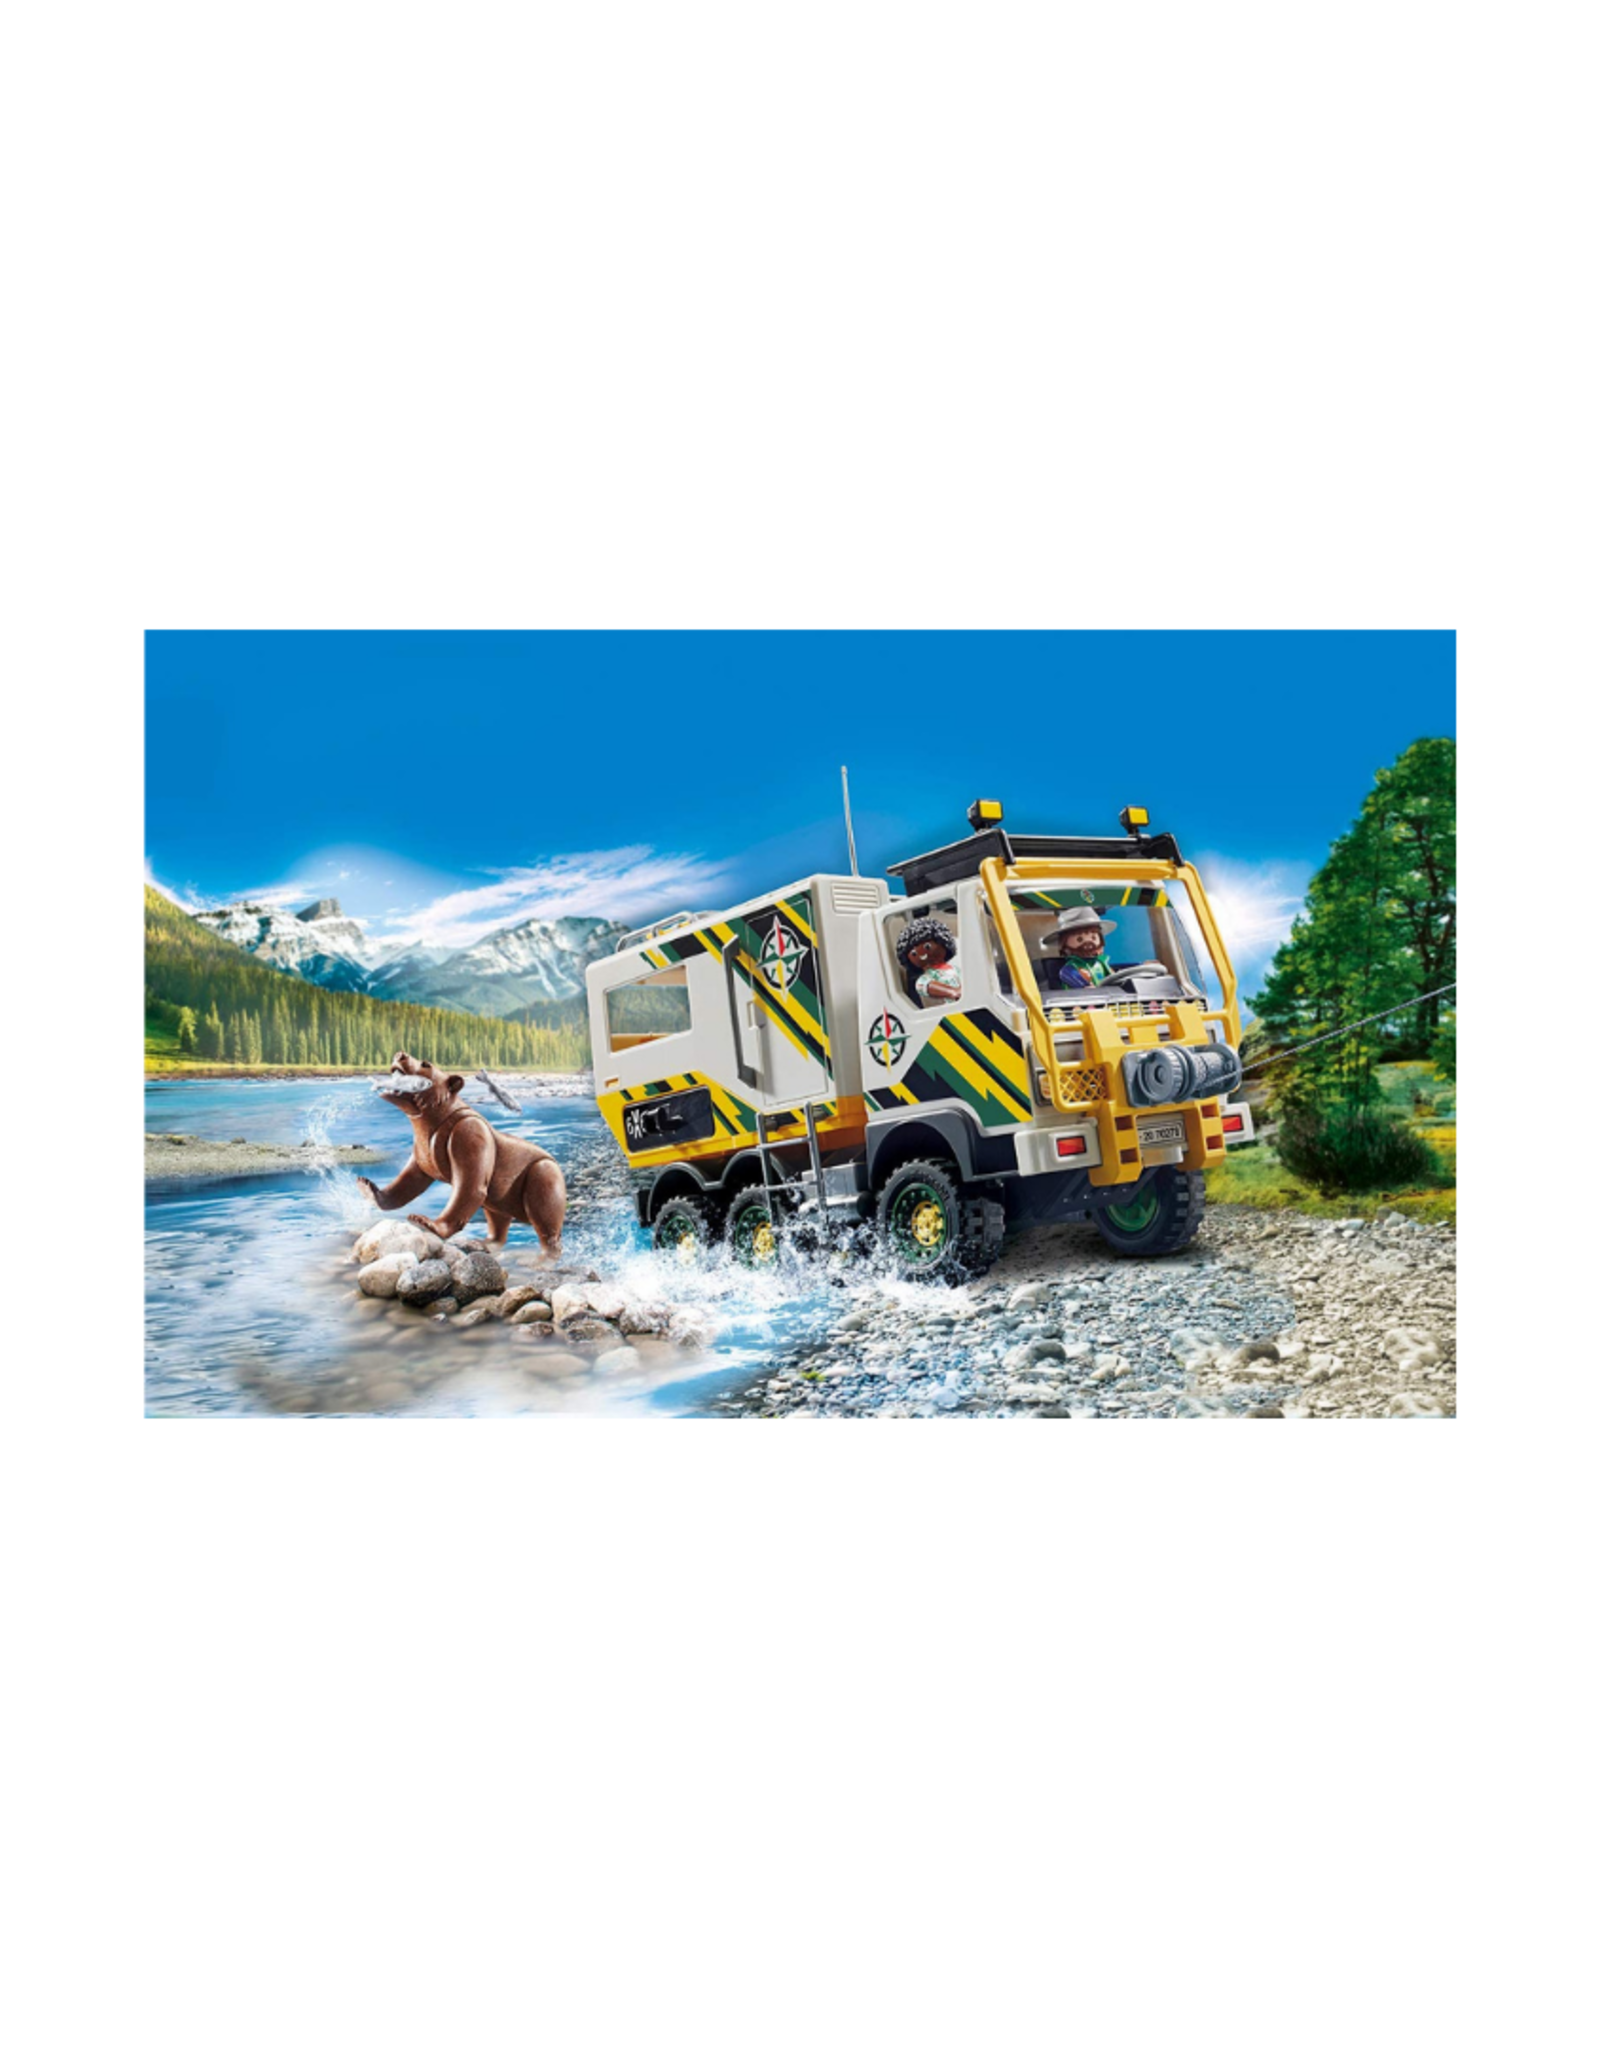 Playmobil PM - Outdoor Expedition Truck